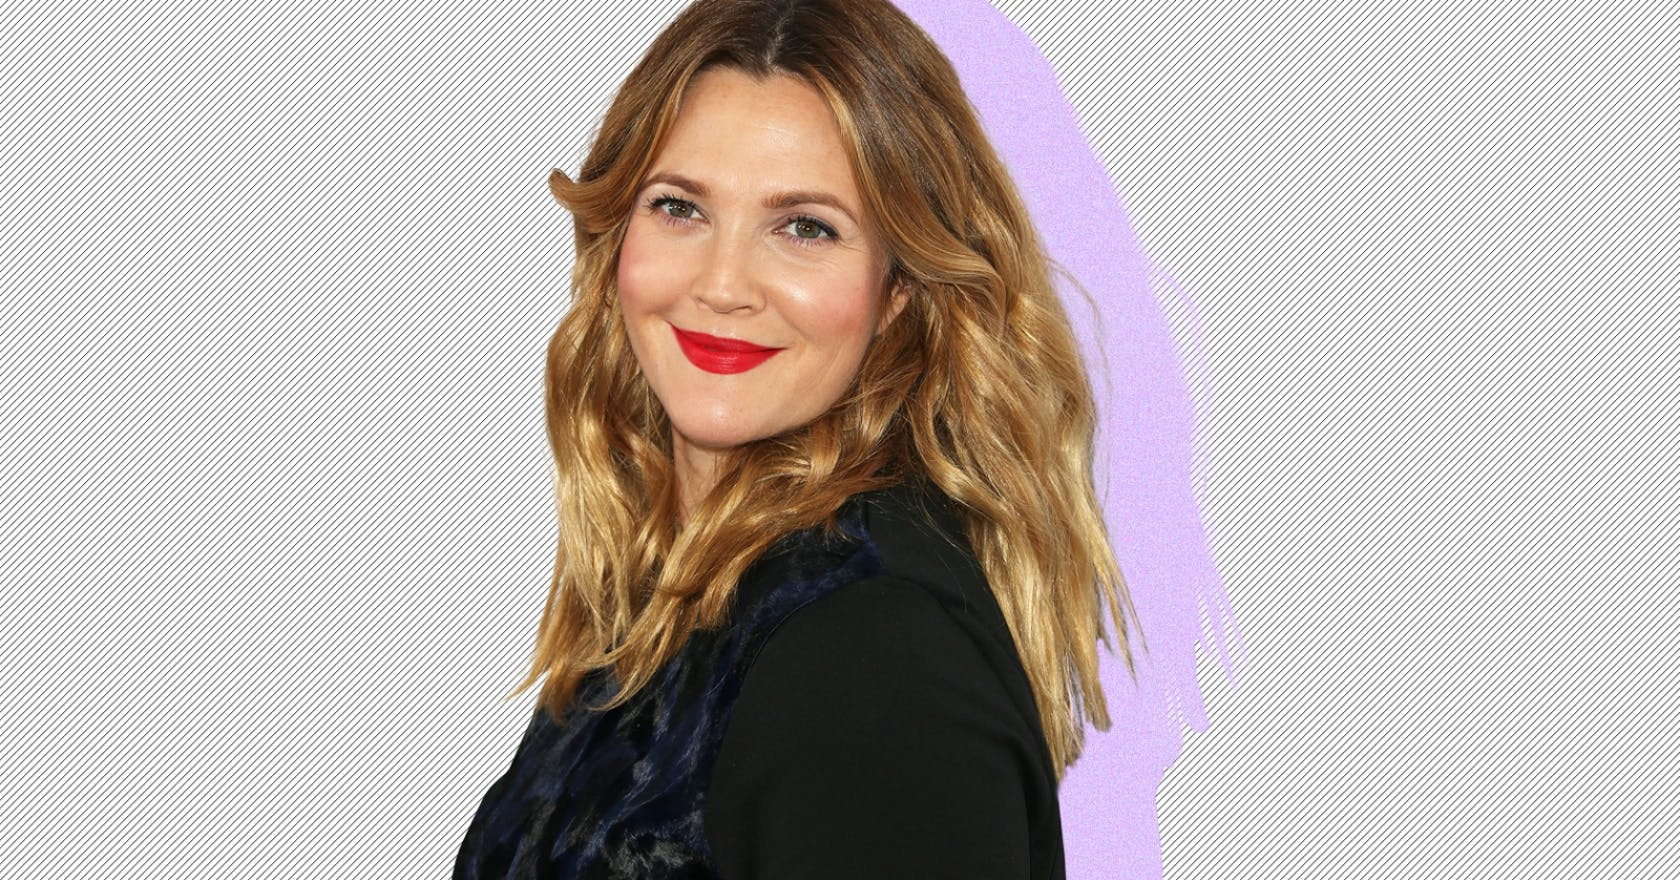 Drew Barrymore is here to remind us that Instagram is not real life